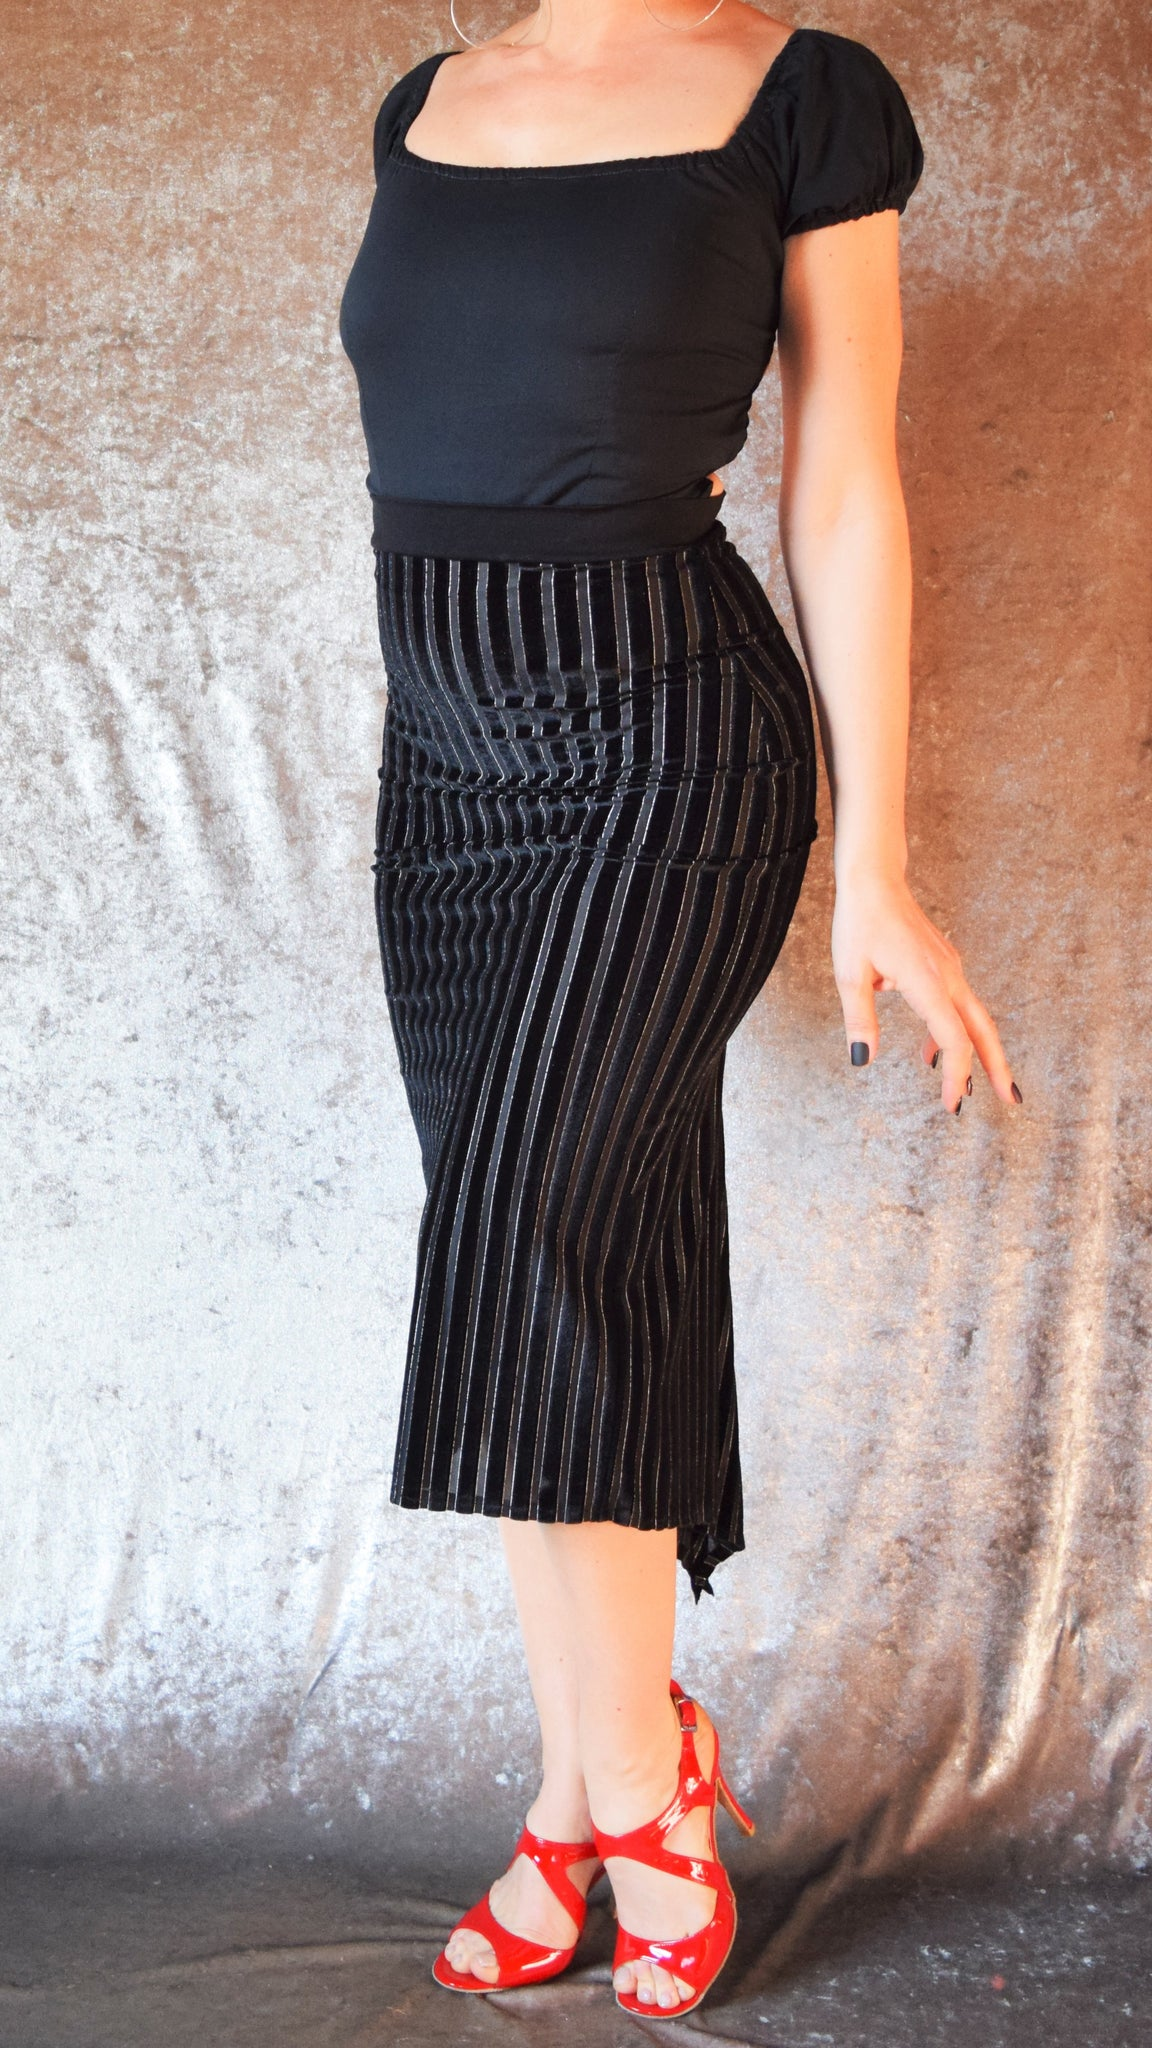 Black Pinstripe Burnout Velvet Fishtail Skirt - Choose Your Size